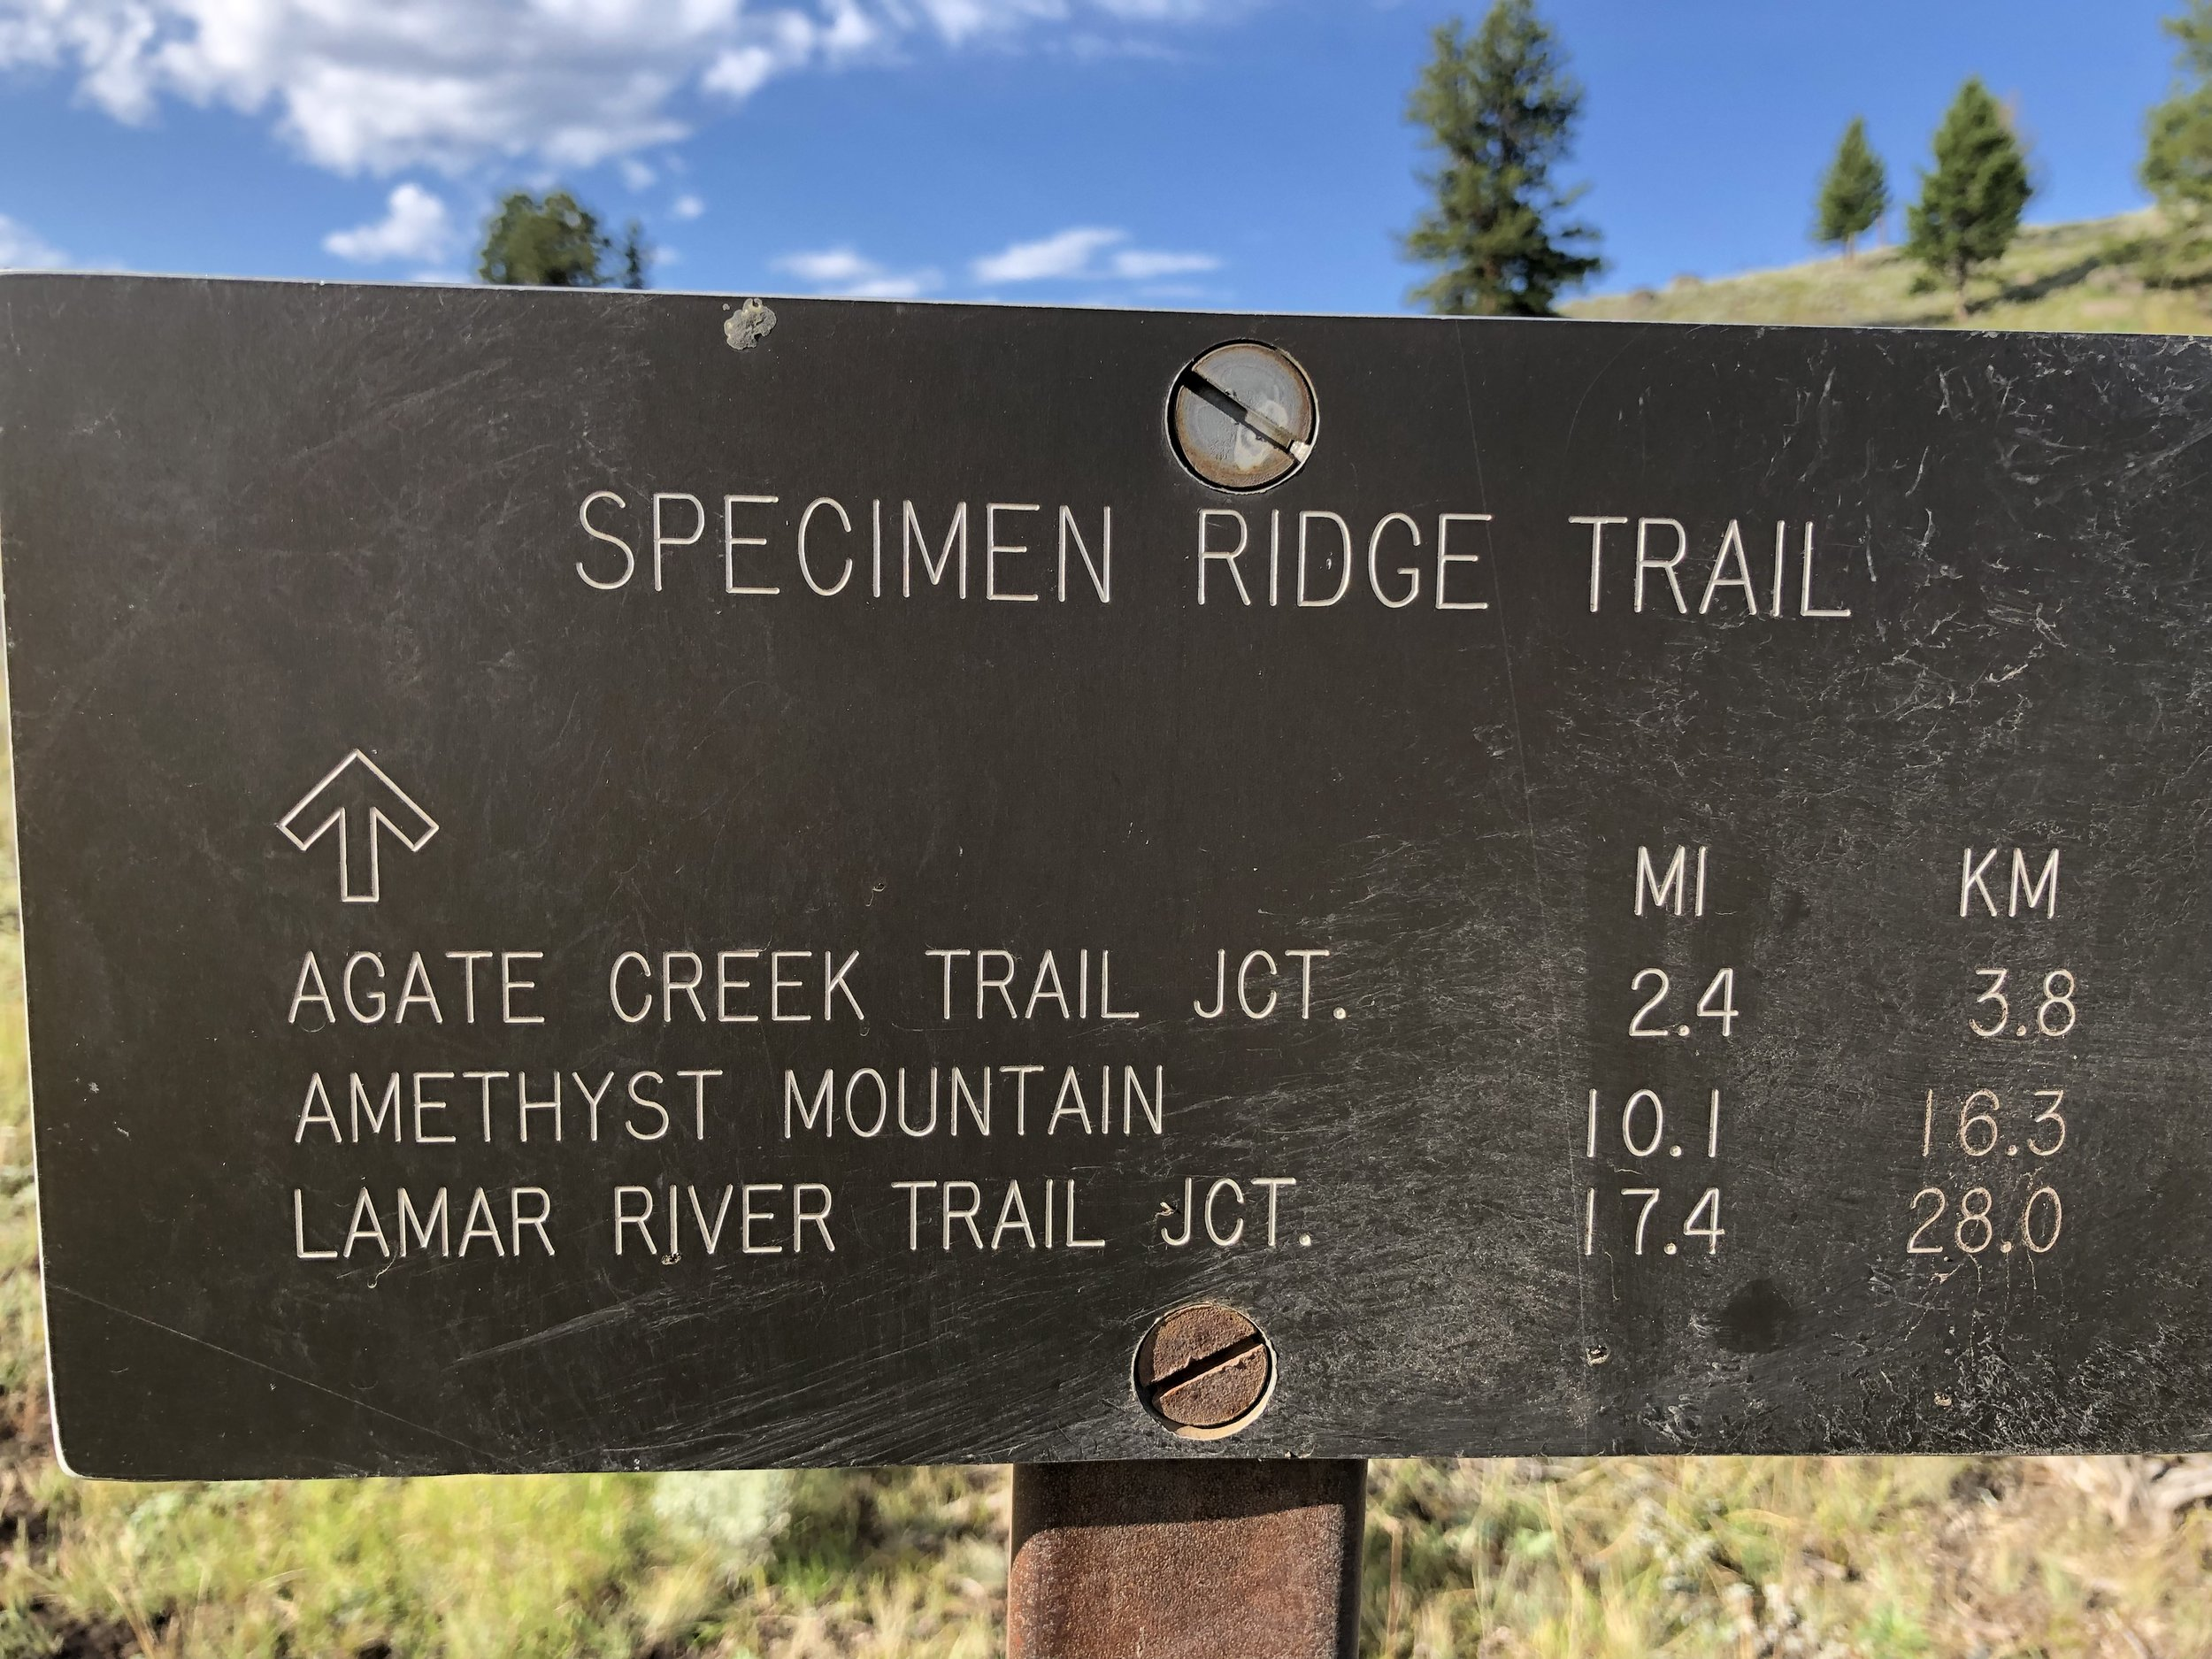 The Specimen Ridge Trail. Hardest, most adventurous and most fun hike I've ever done